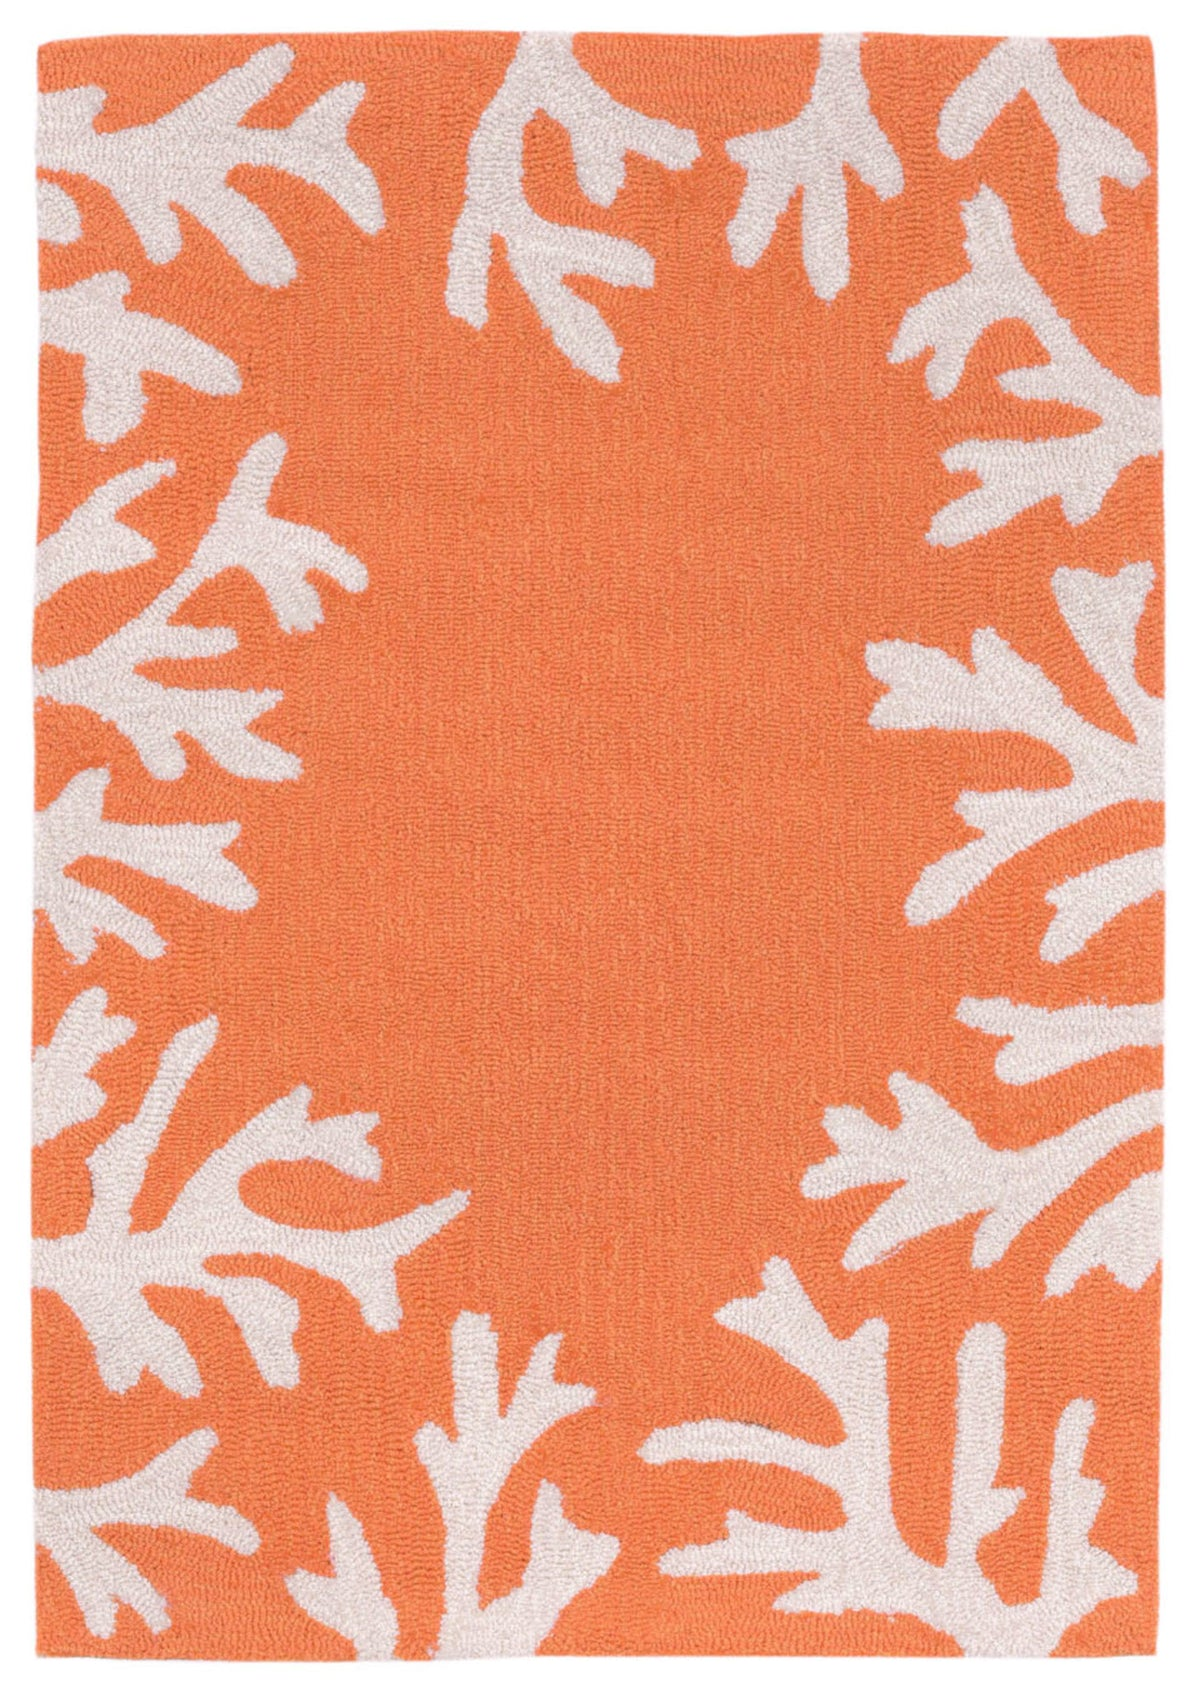 Capri Coral Bdr Coral Indoor/Outdoor Rug